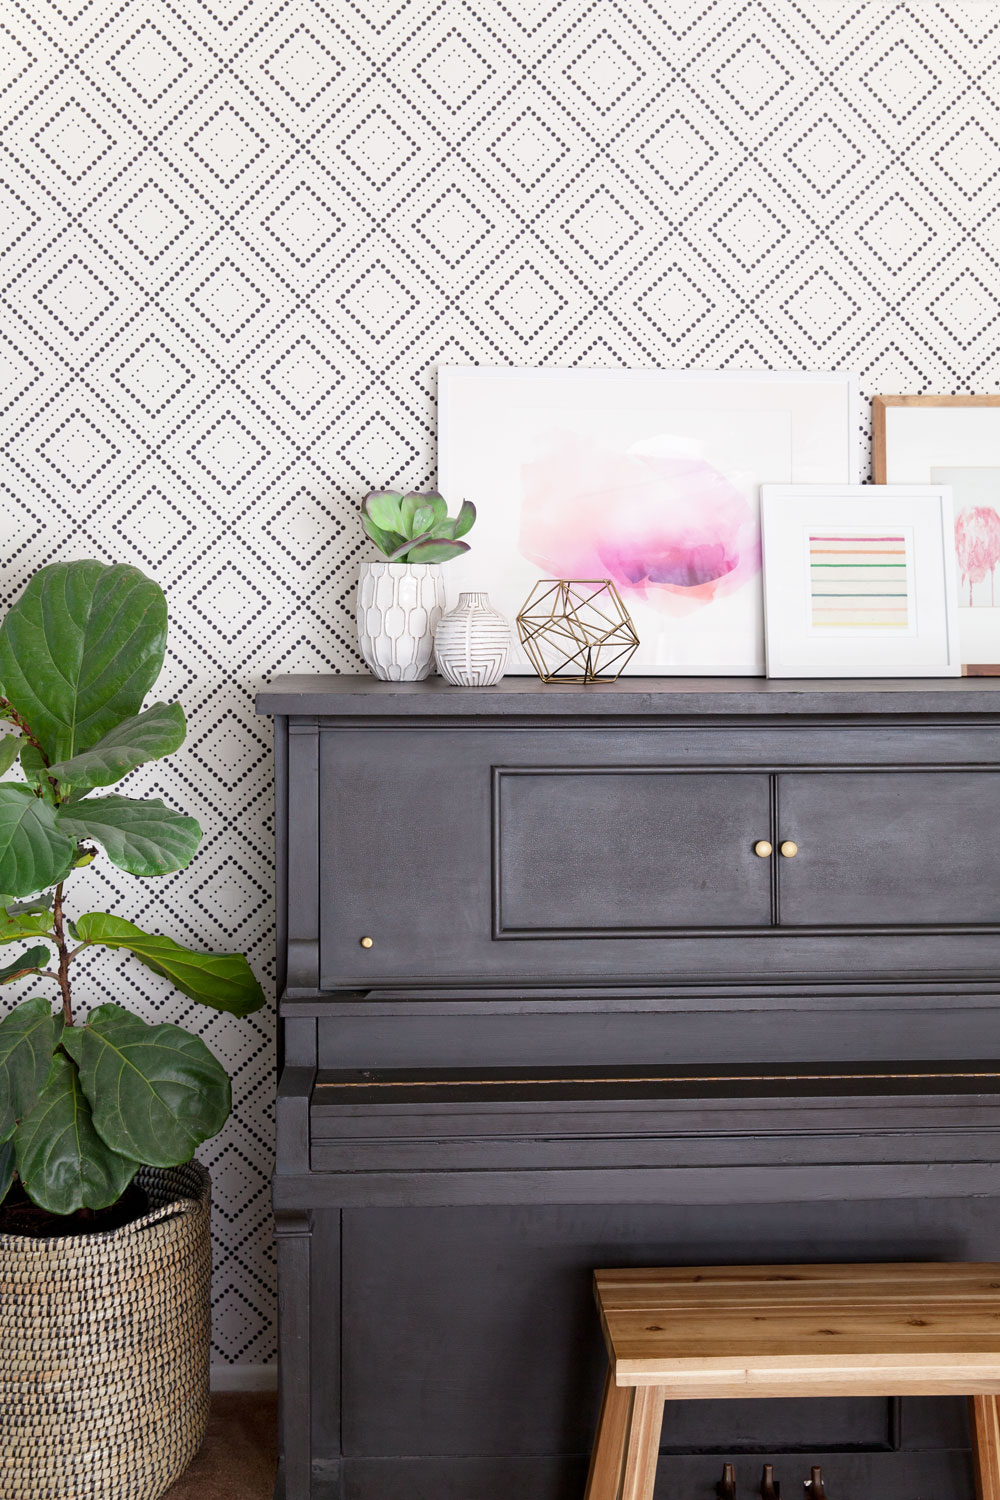 HOW TO TRANSFORM A ROOM USING REMOVABLE WALLPAPER Tell